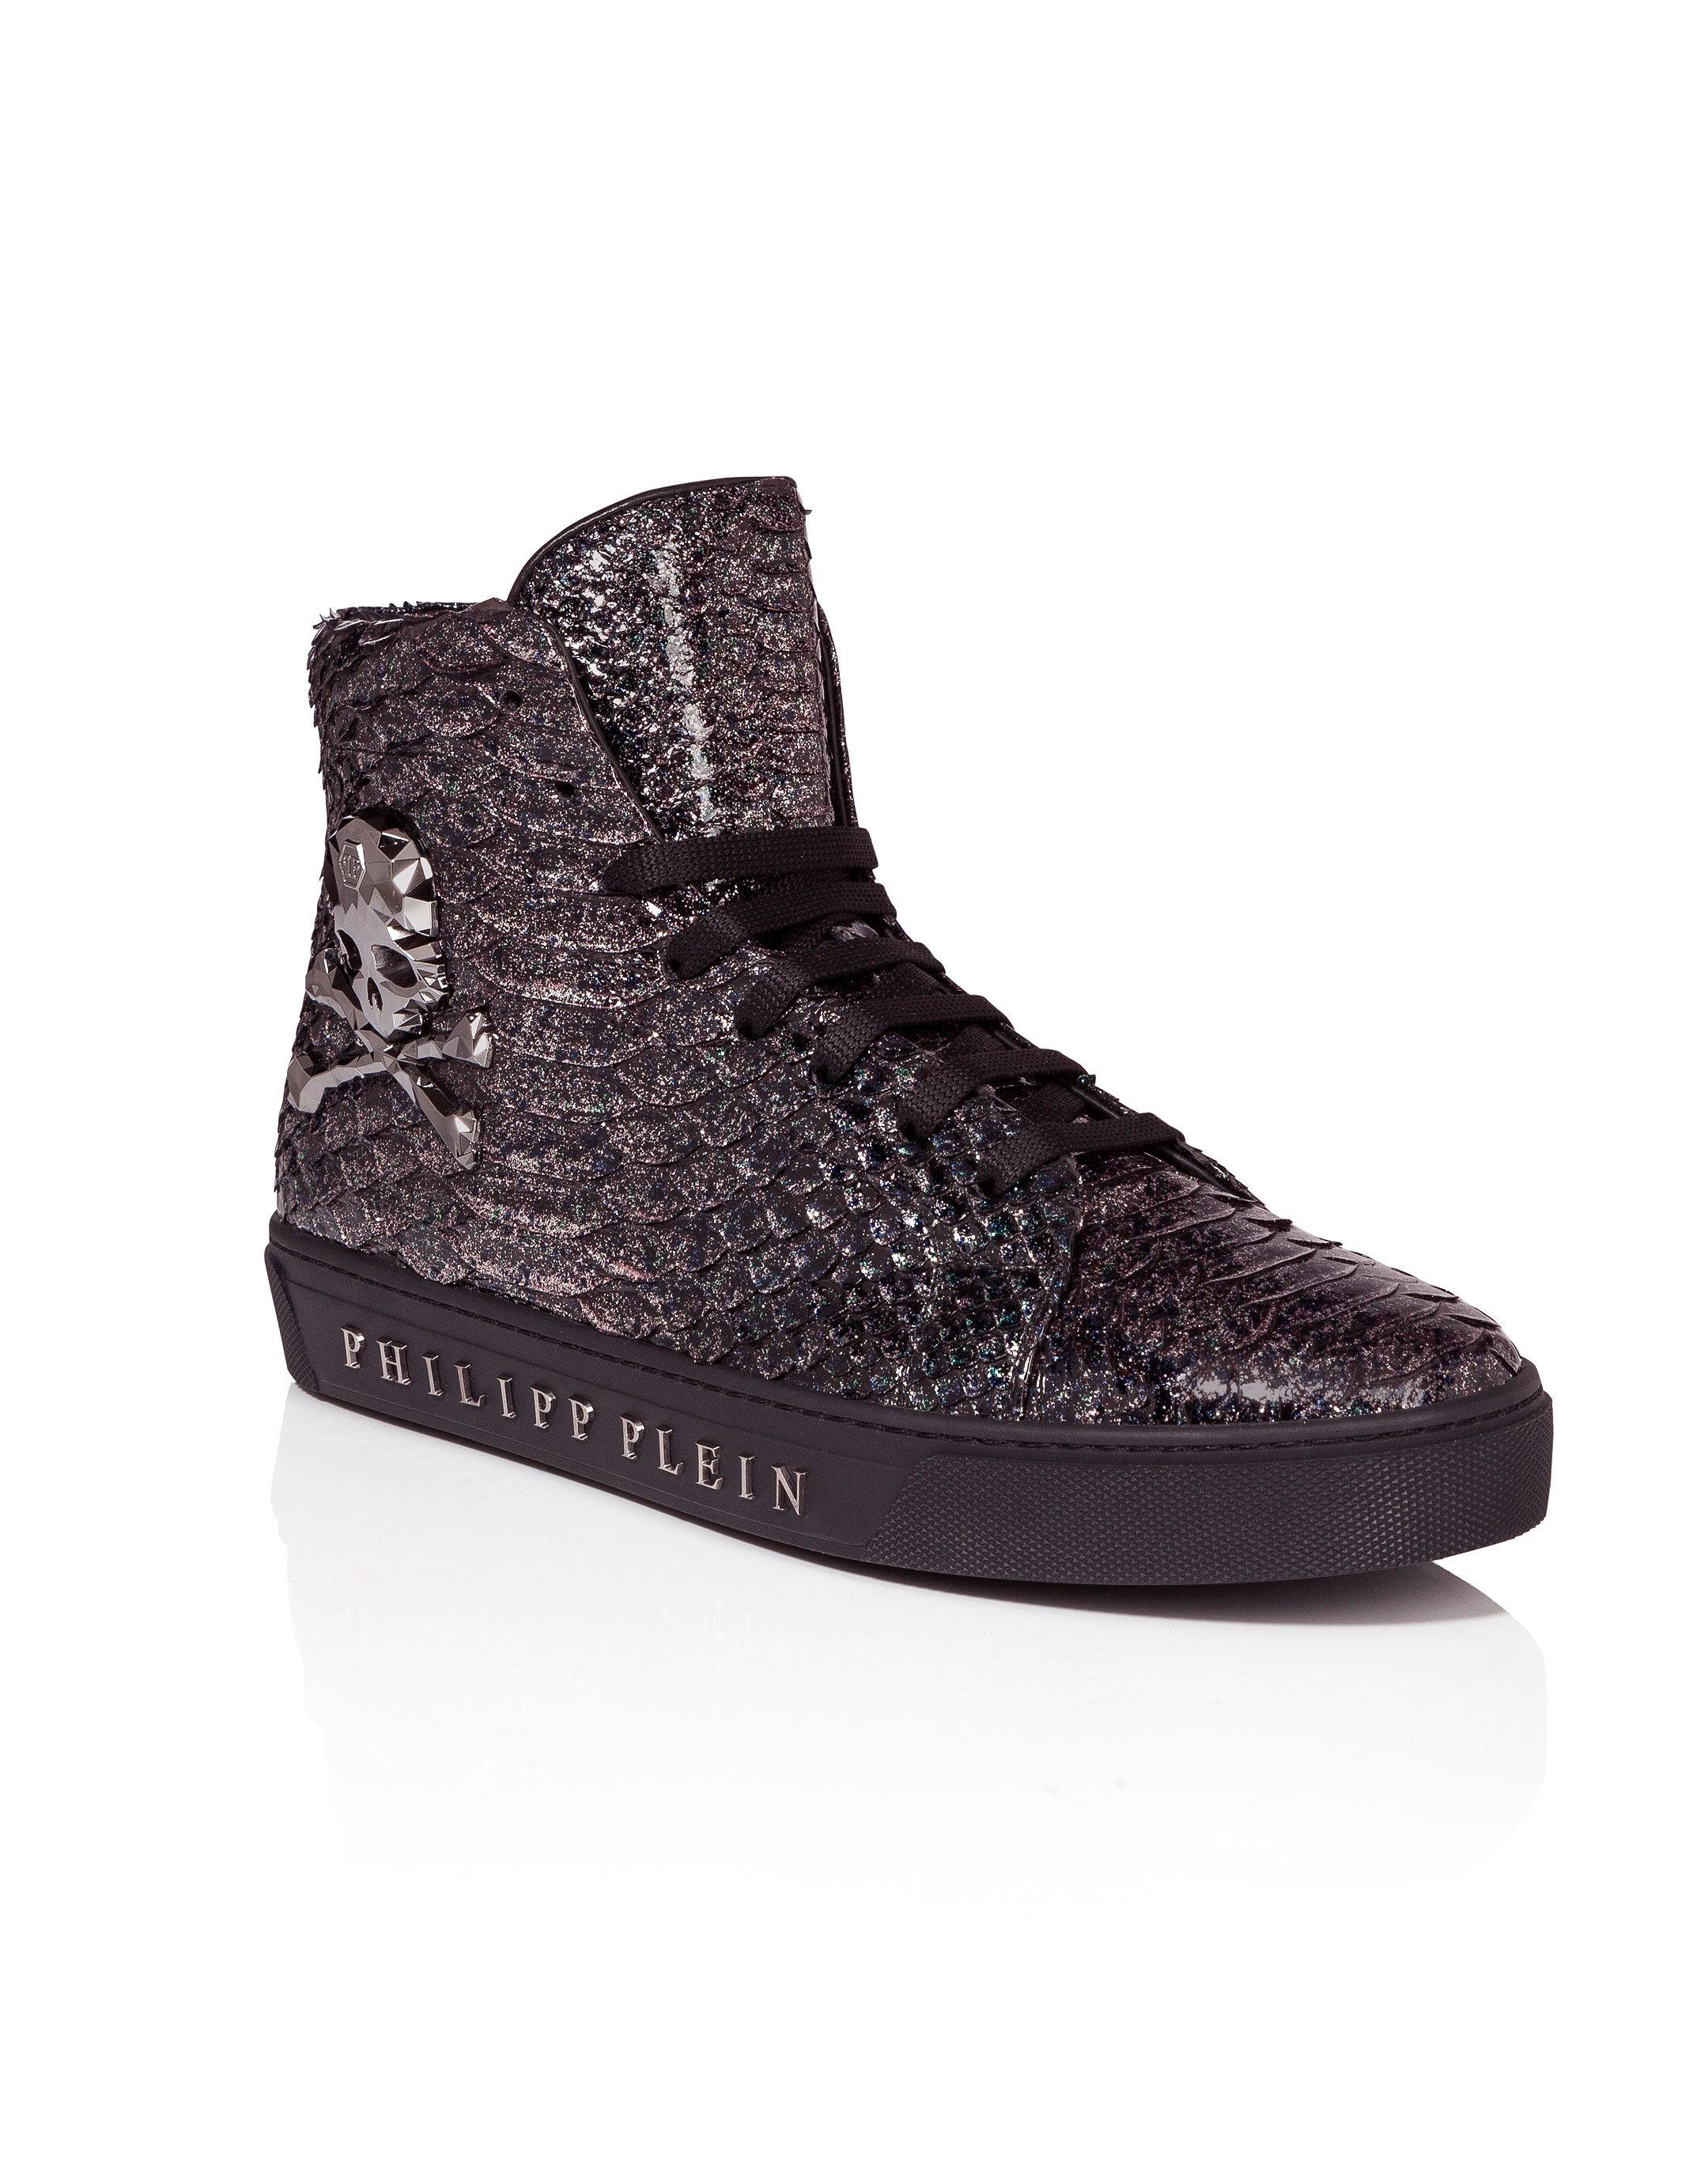 Bill hi-top sneakers - Black Philipp Plein q5zlZ9